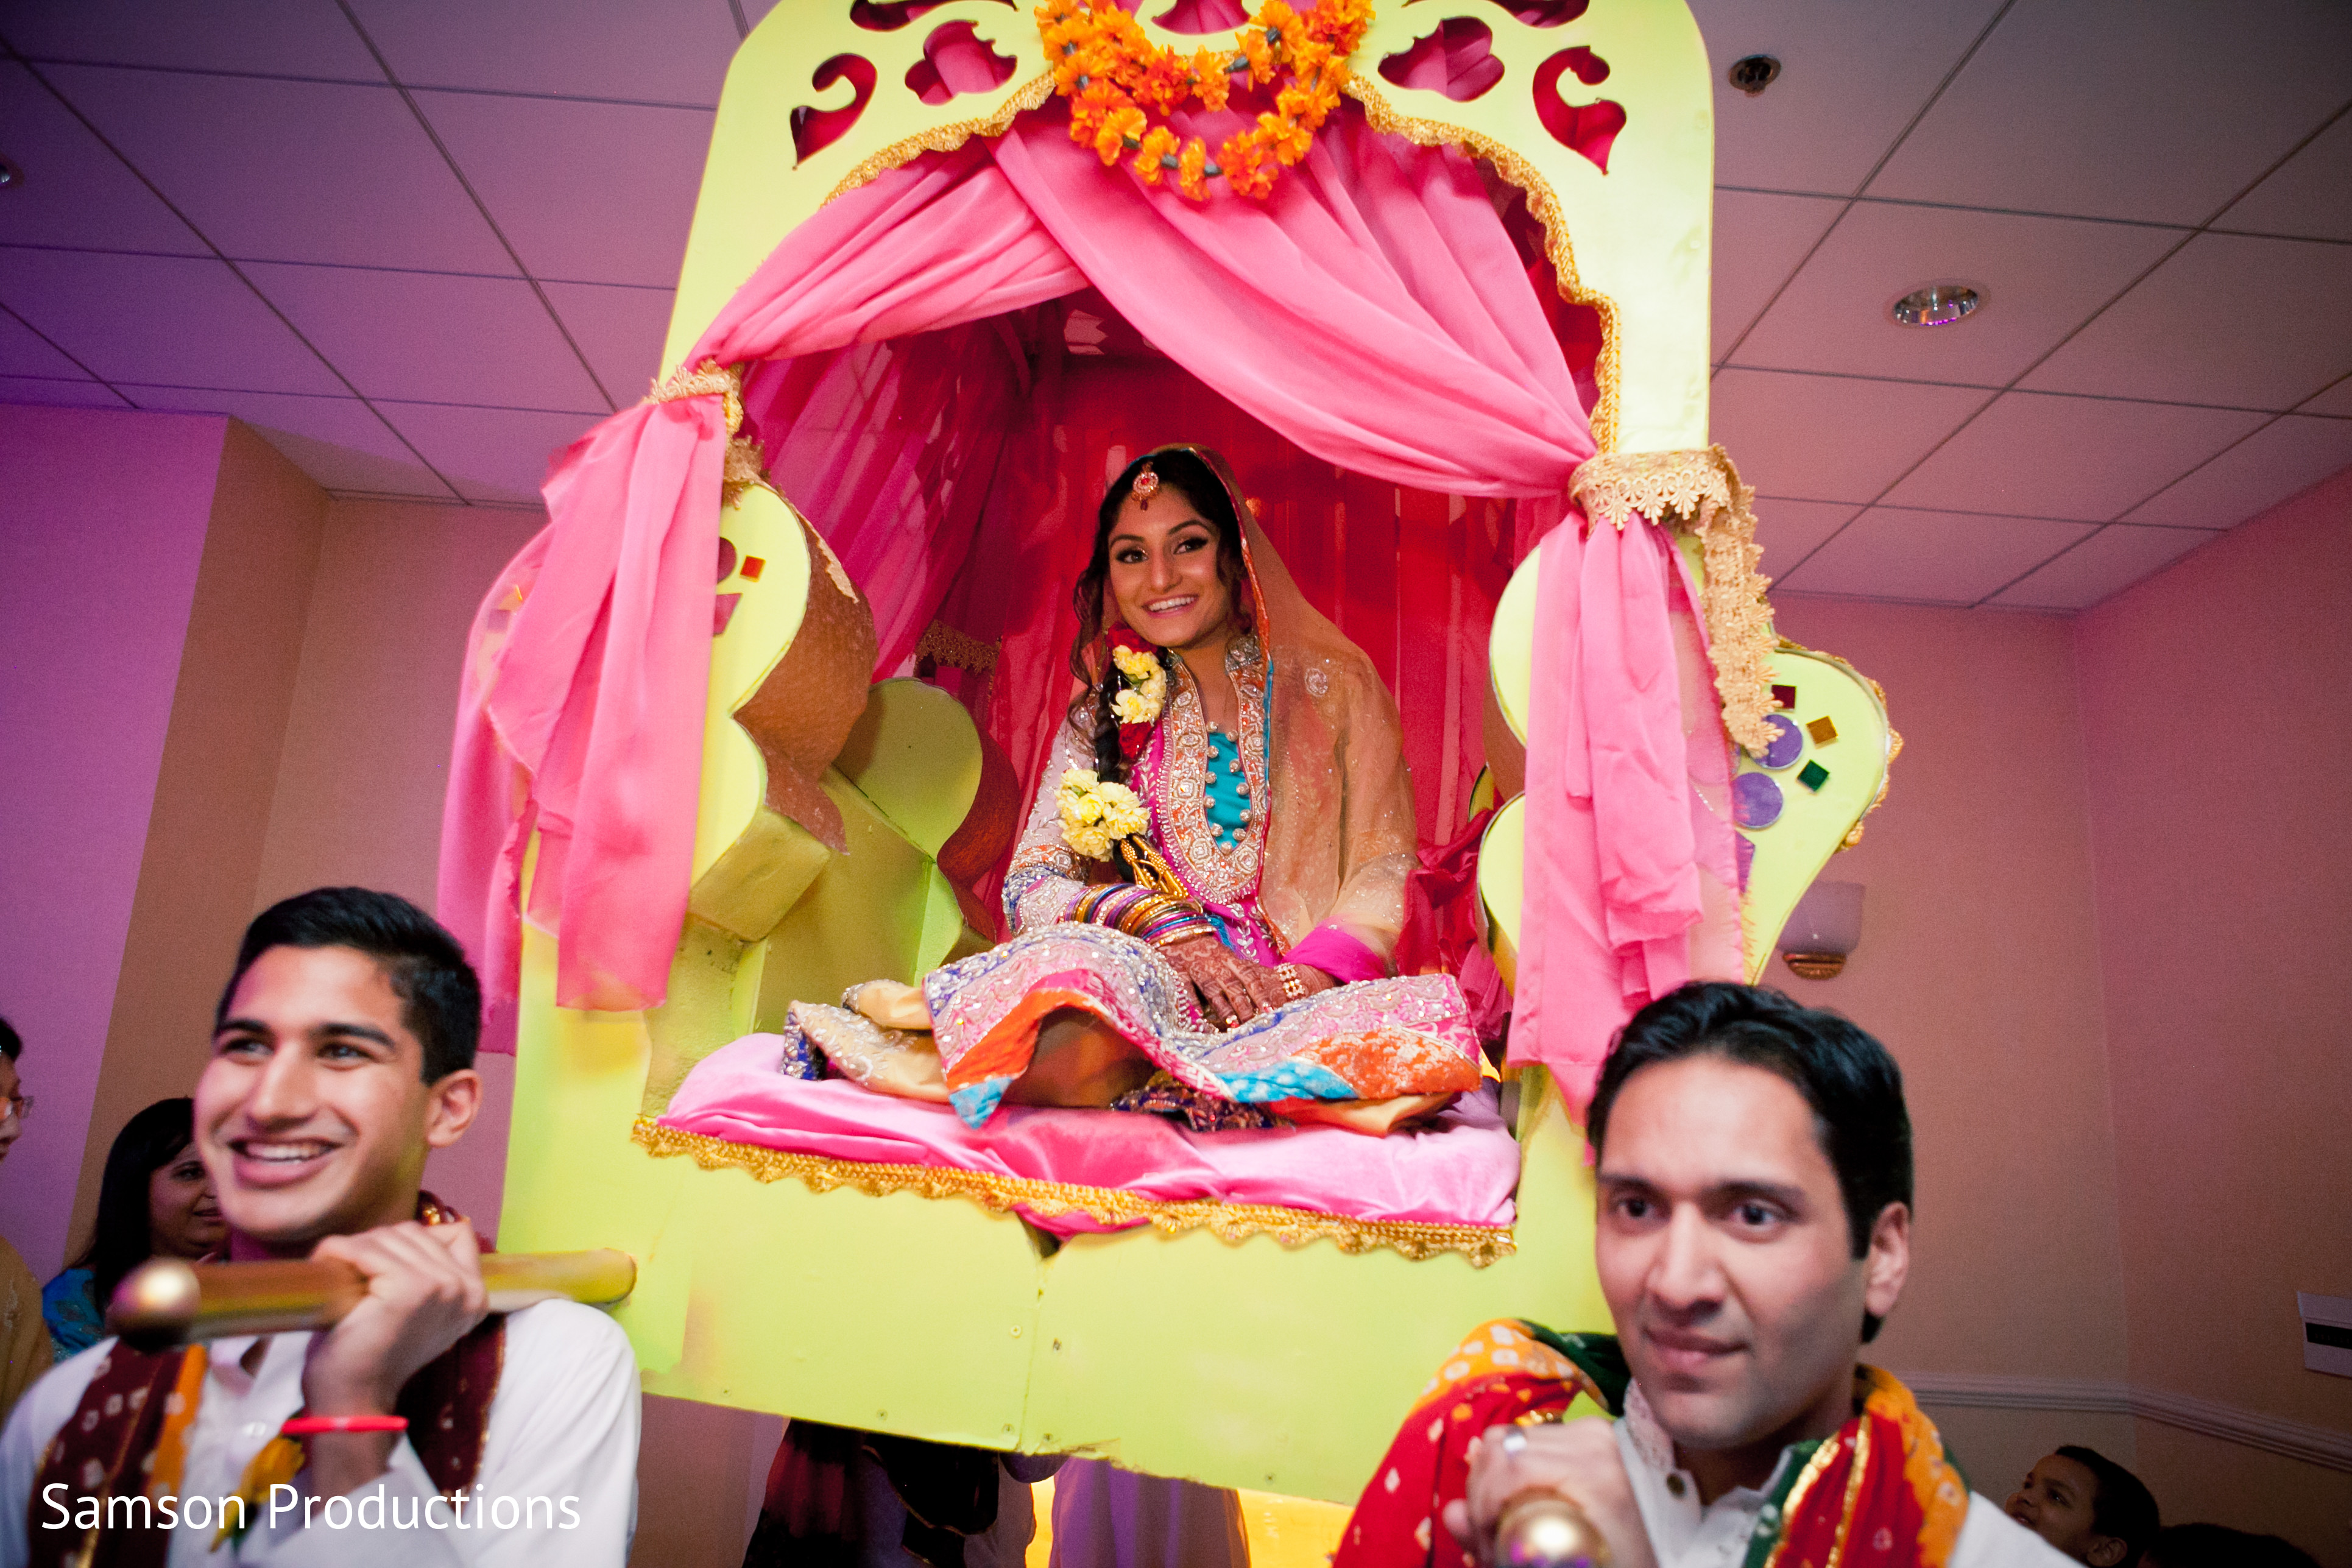 Anaheim ca pakistani wedding by samson productions sangeetsangeet nightmehndi nightindian wedding celebrationsindian wedding traditions junglespirit Images